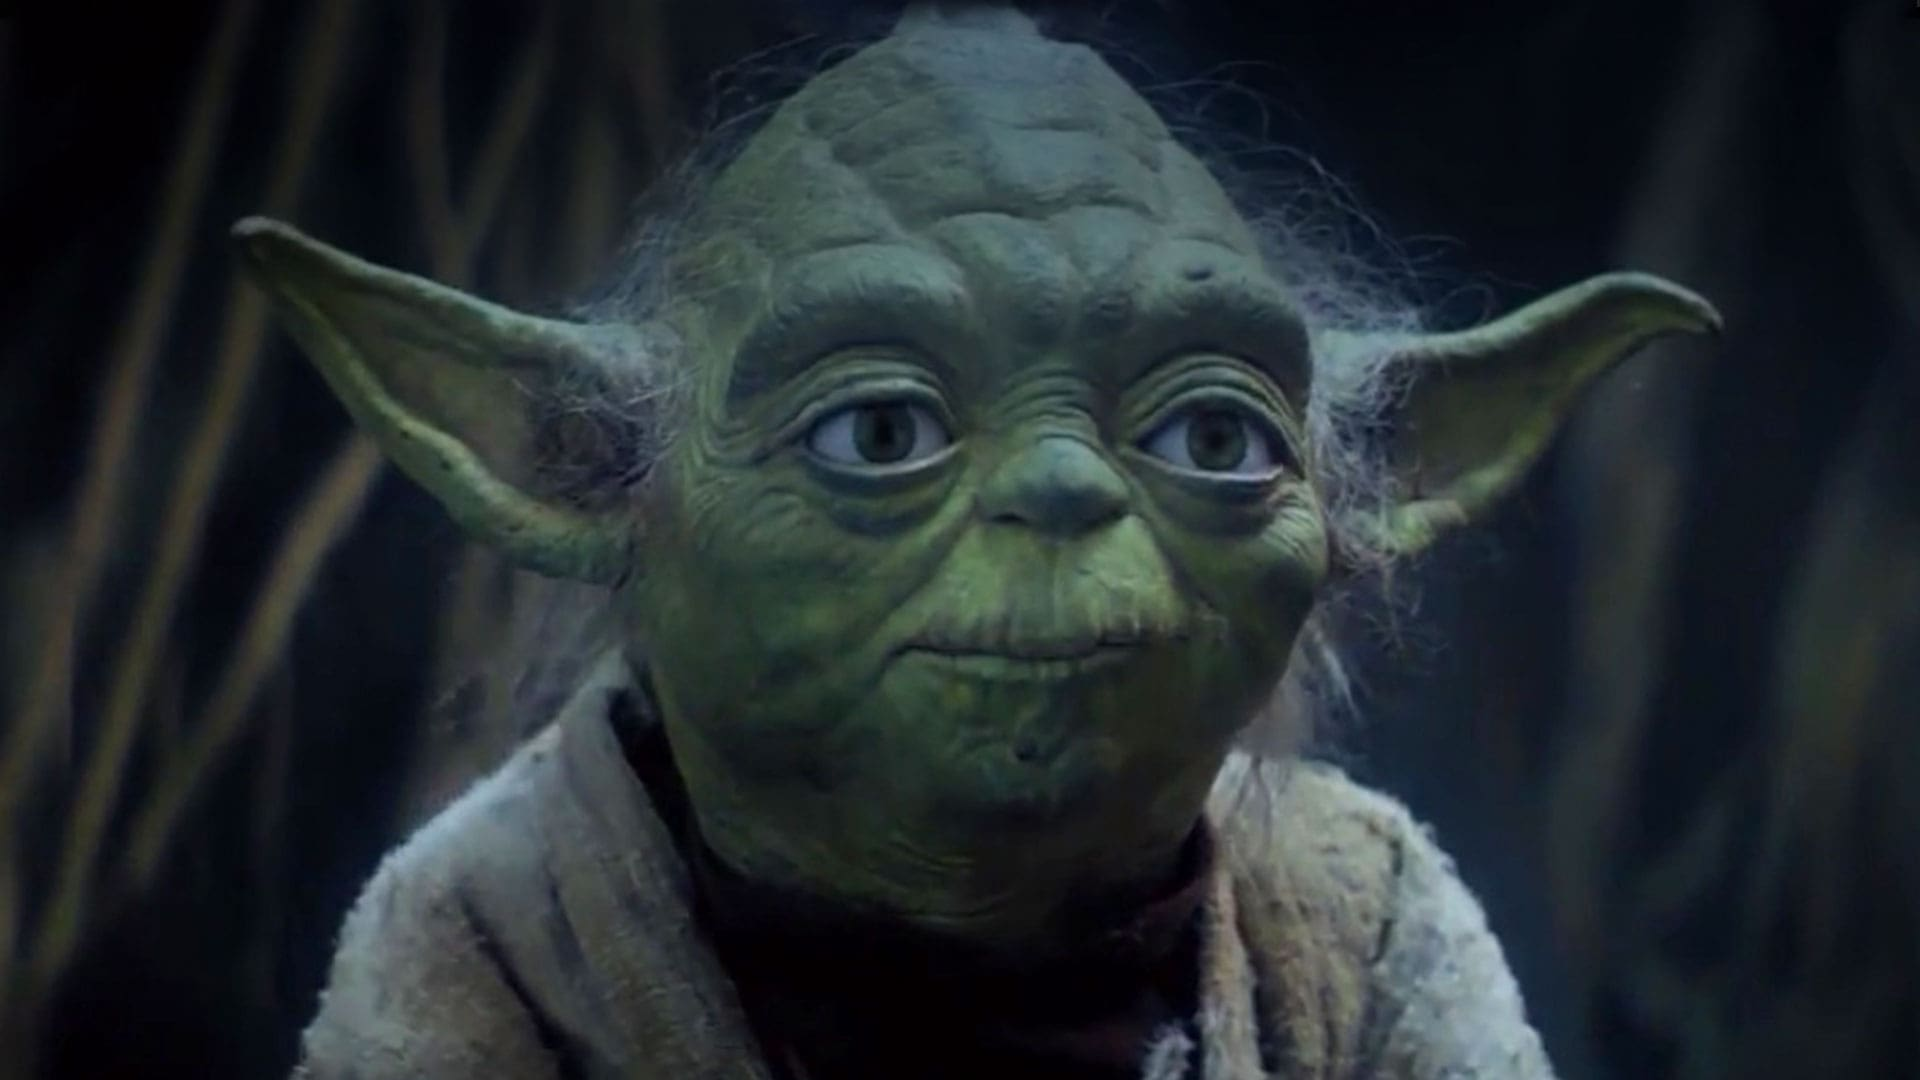 Yoda Quotes: Best Yoda Quotes - The StarWars.com 10